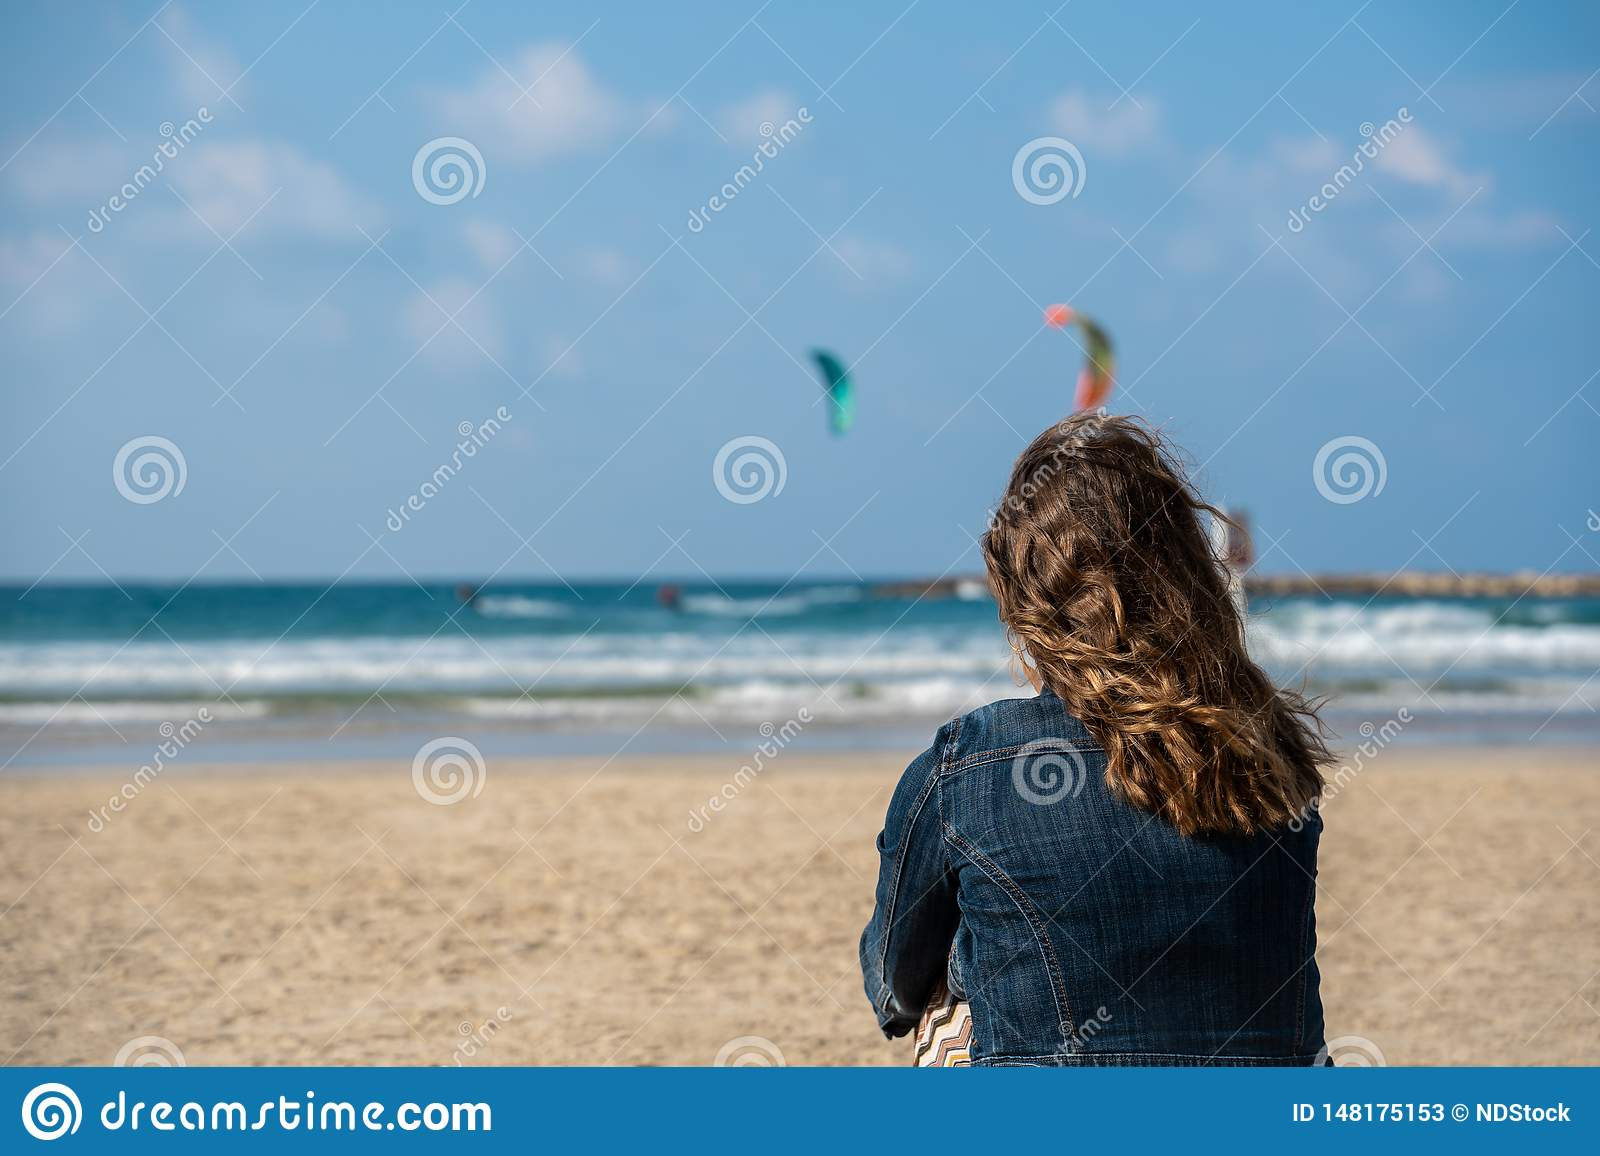 Picture of a woman on the beach looking at two kitesurfers in the sea